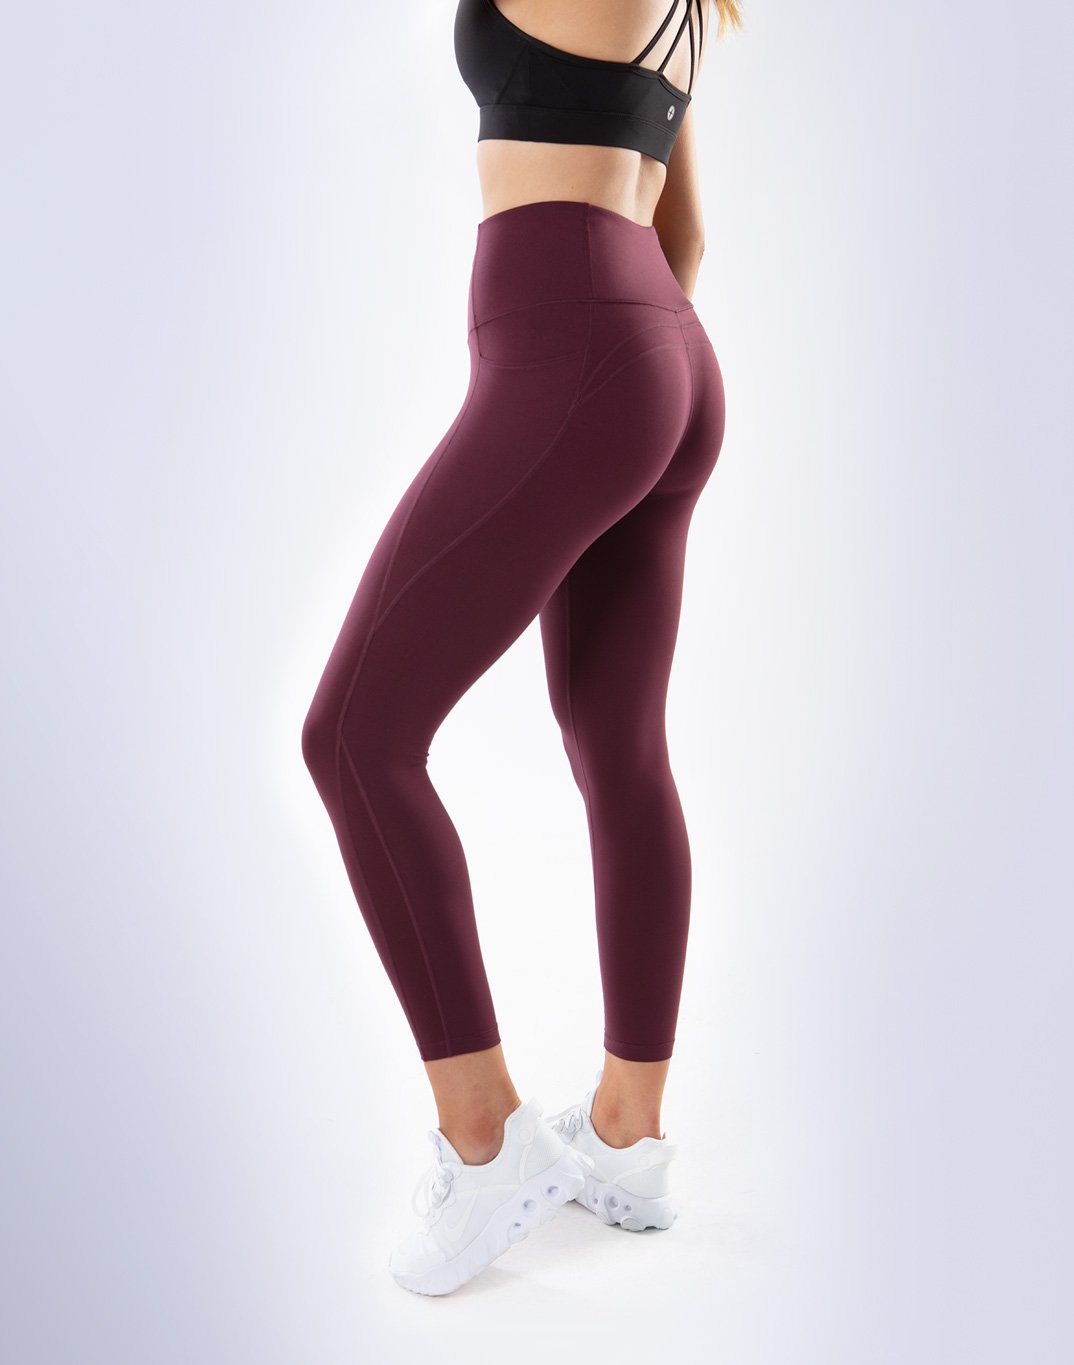 Gym Plus Coffee Leggings All-In Pant 2.0 in Plum Designed in Ireland